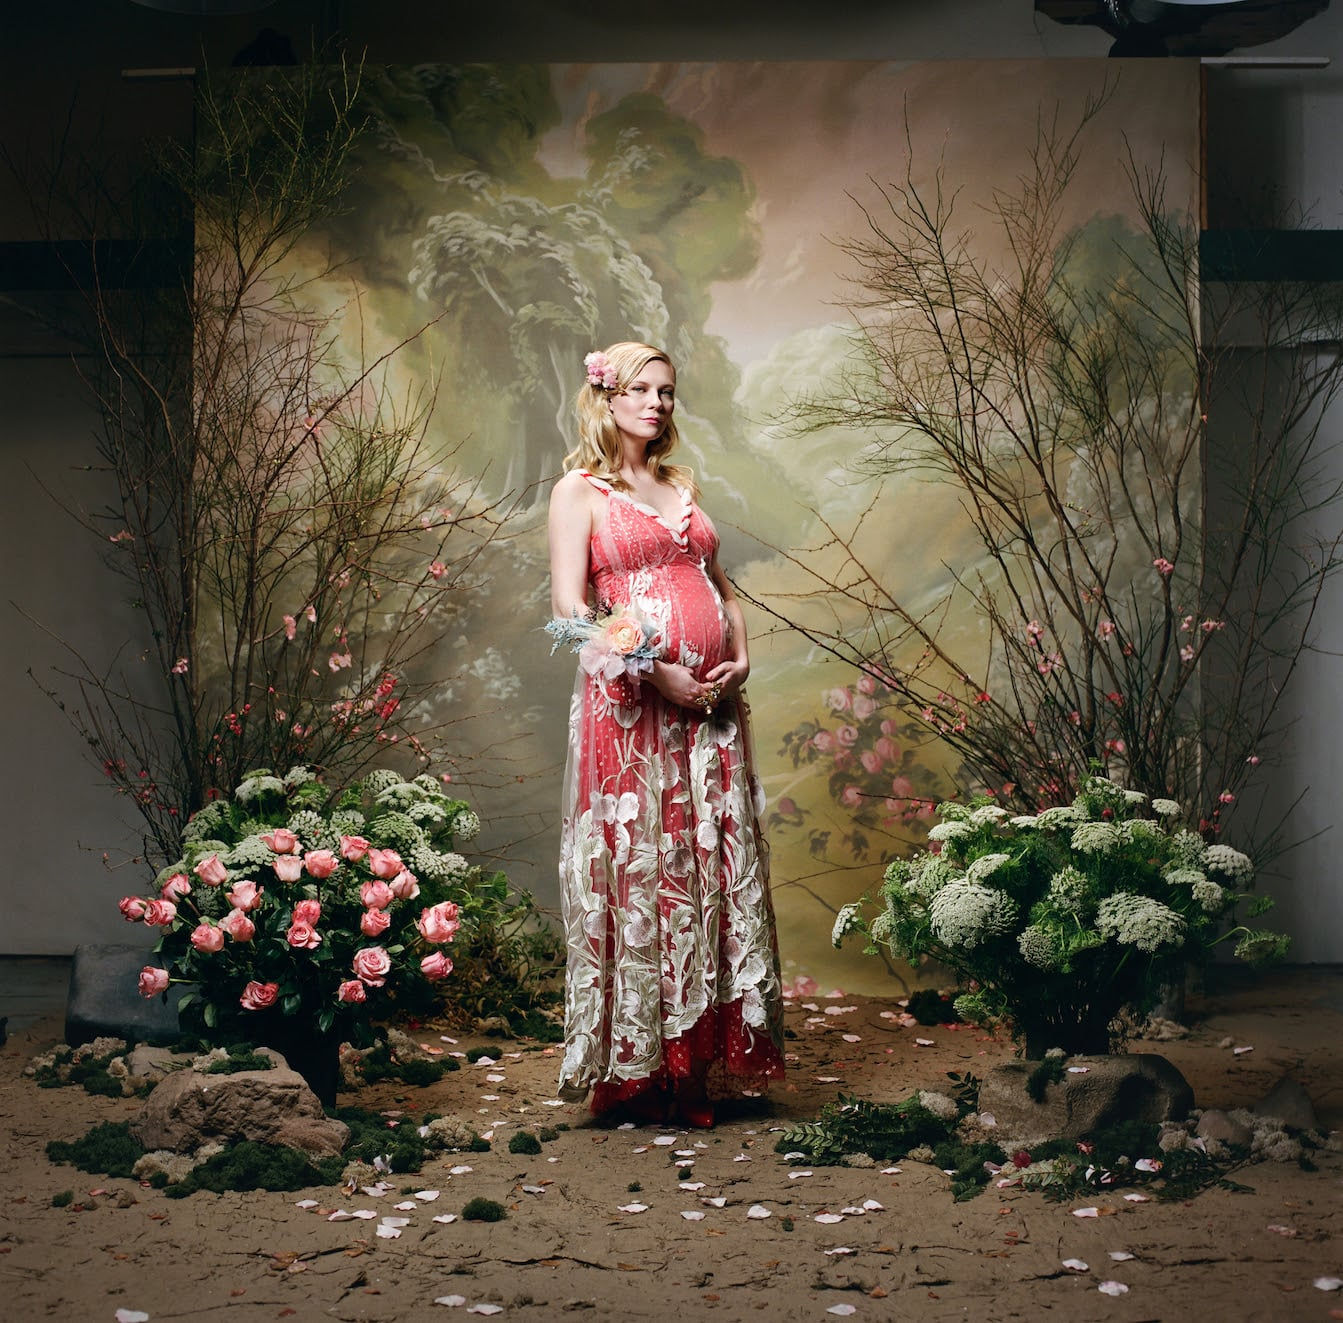 Kirsten Dunst Finally Confirms Pregnancy In Stunning Photo Shoot